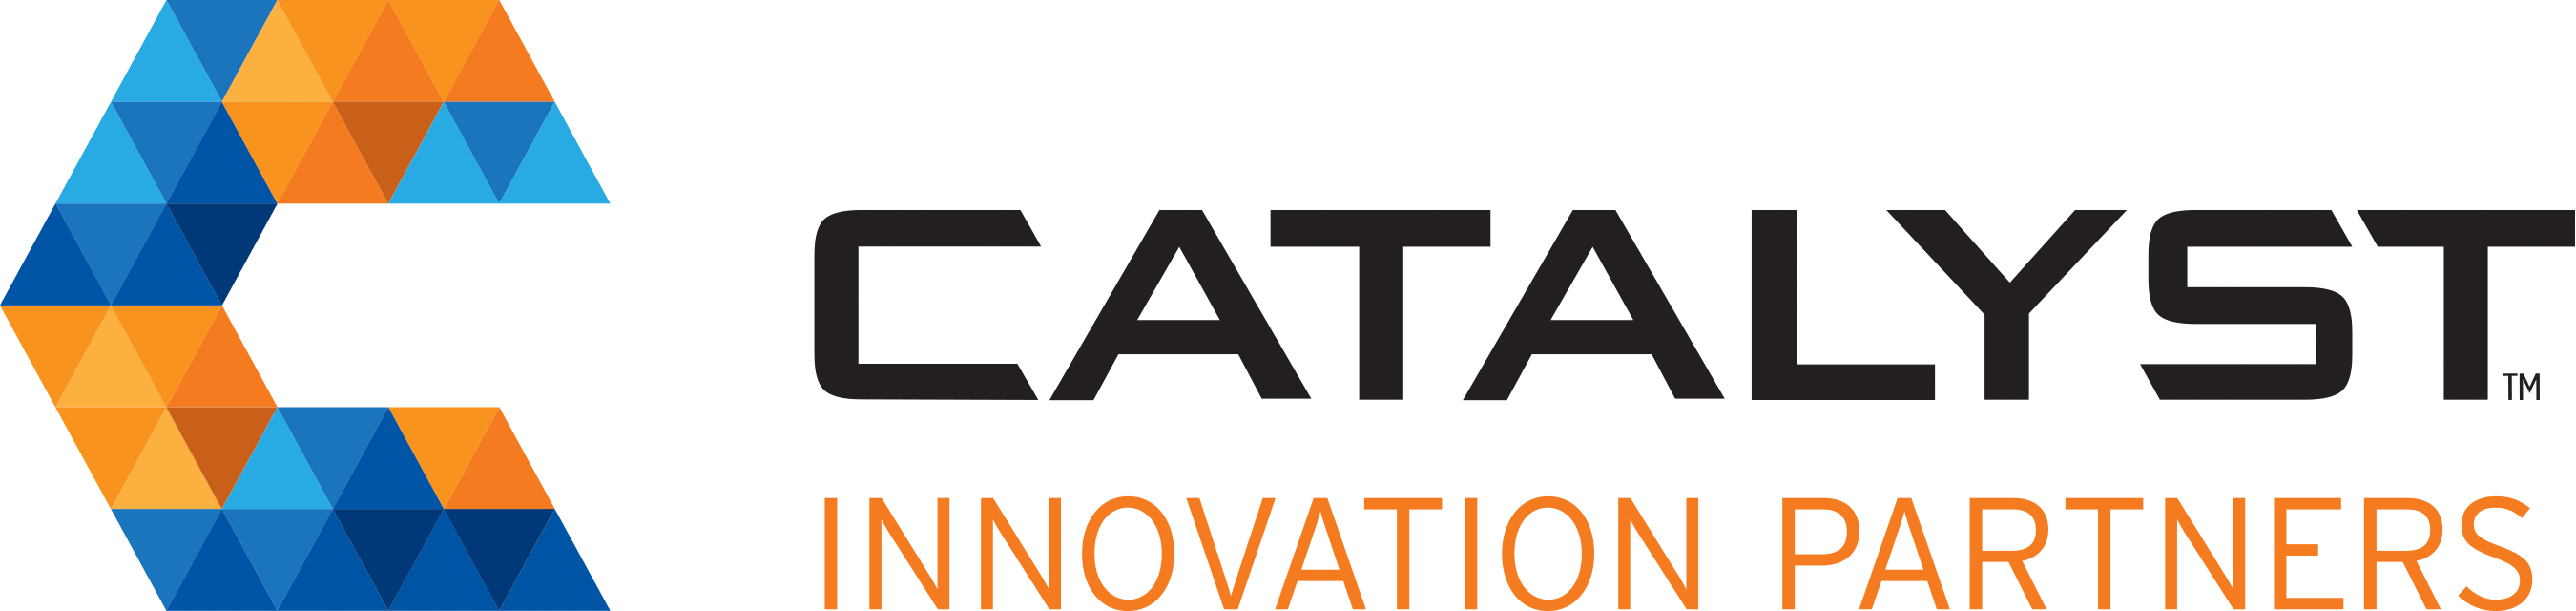 Catalyst Innovation Partners